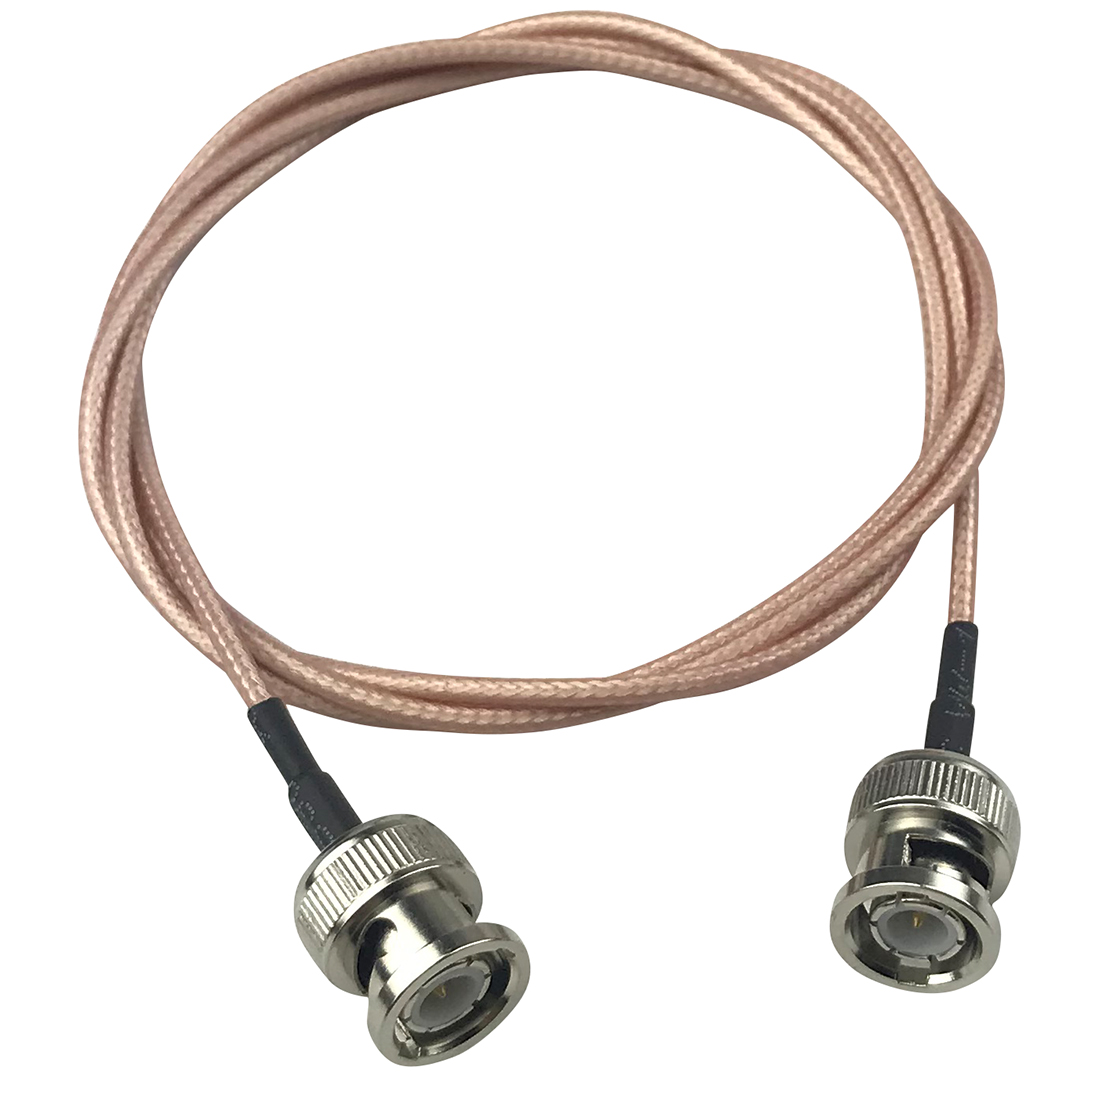 RG316 SDI Cable 50 Ohm BNC Male To BNC Male Video Coaxial Coax Cable For SDI Camera Security CCTV Camera DVR System/BMCC 1M/3FT